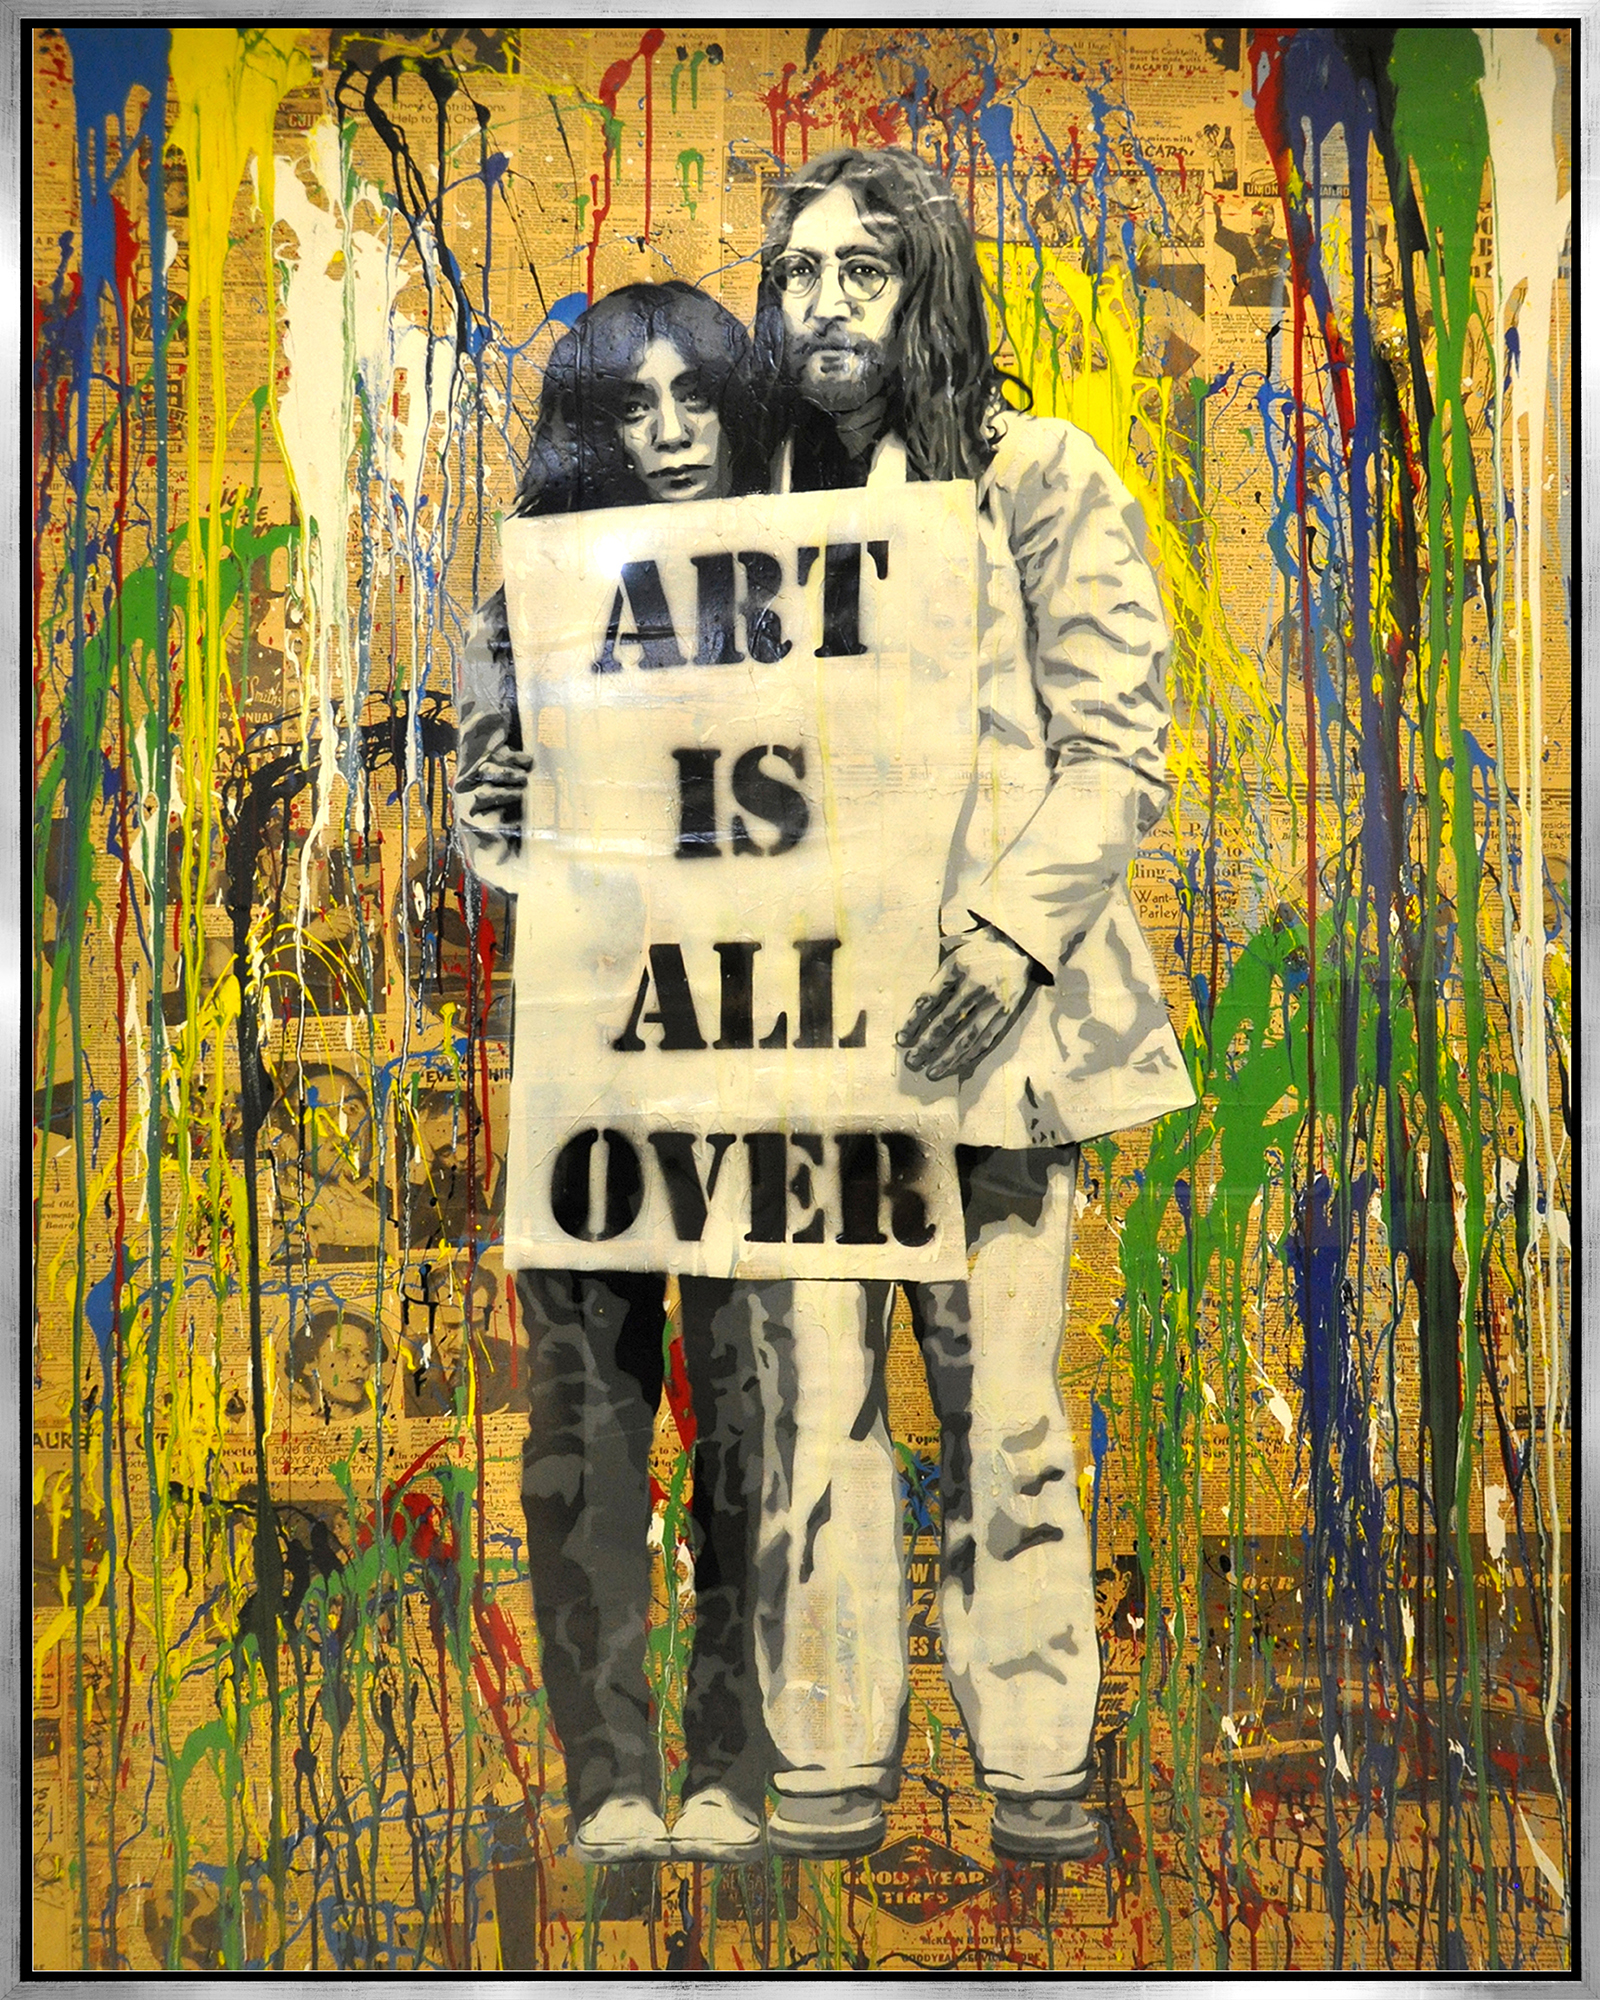 Mr. Brainwash - Art is all over , 9003-012-059